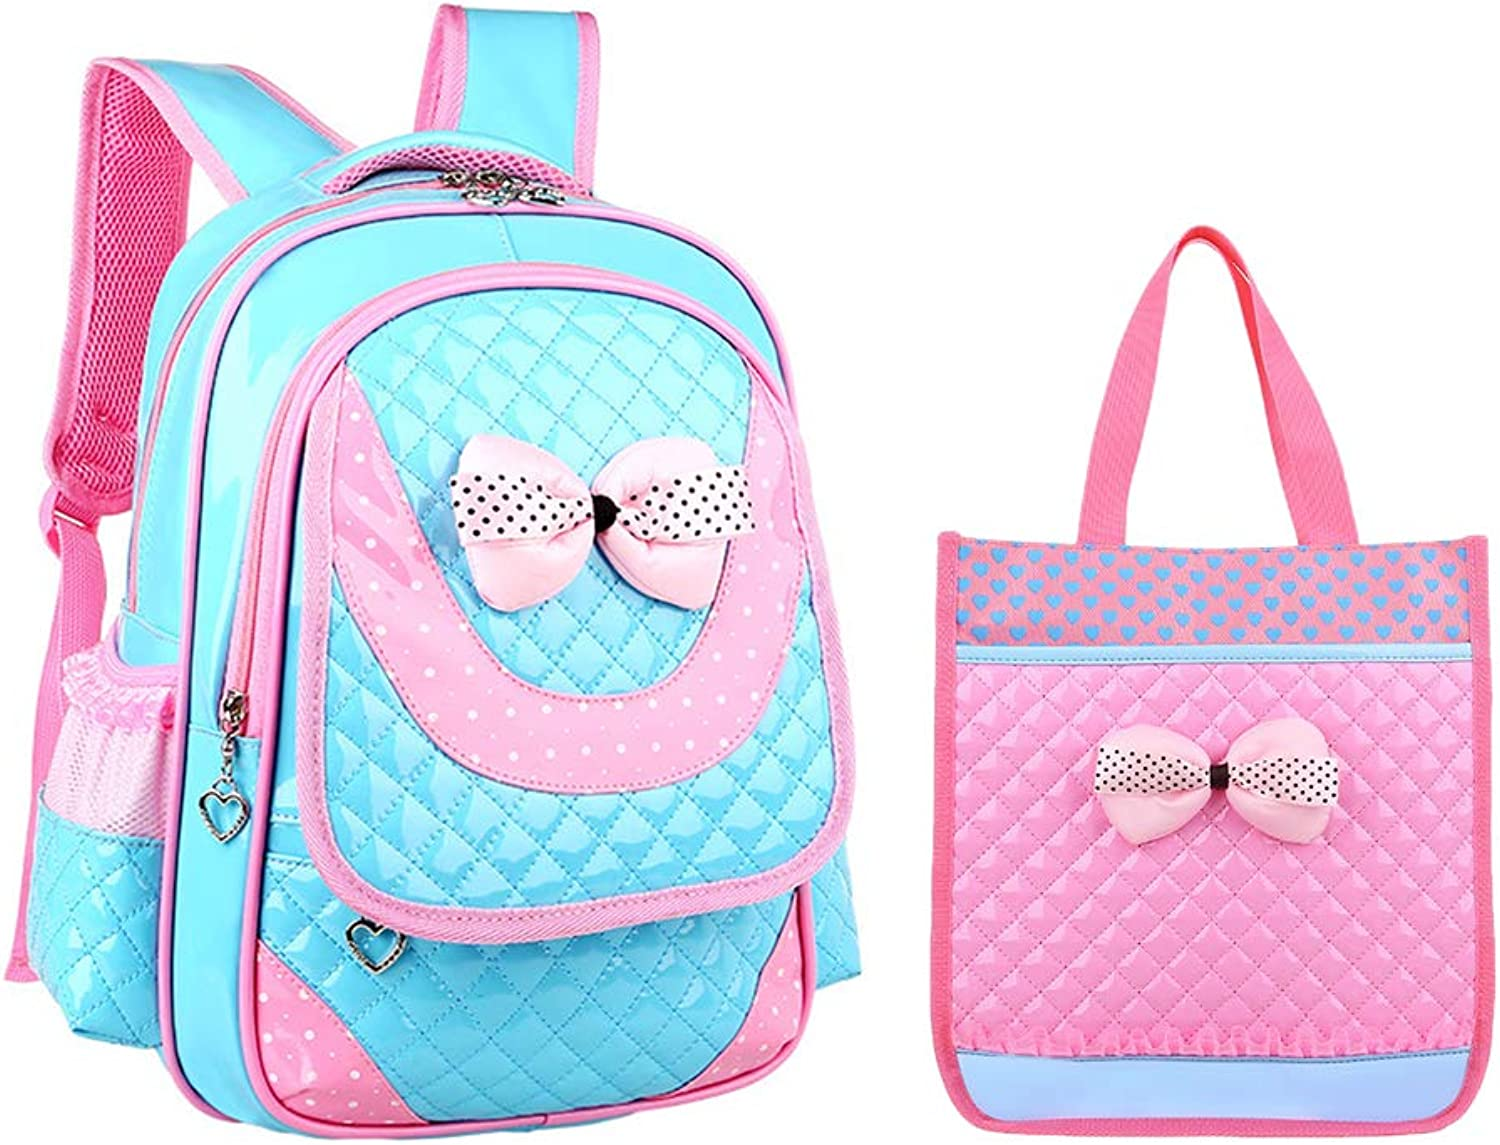 Girls Backpack School Bags Laptop Bag  Zhhlaixing Lightweight and Durable Backpack Reduce Burden Nylon Waterproof Kids Cute Princess Bookbag for Girls